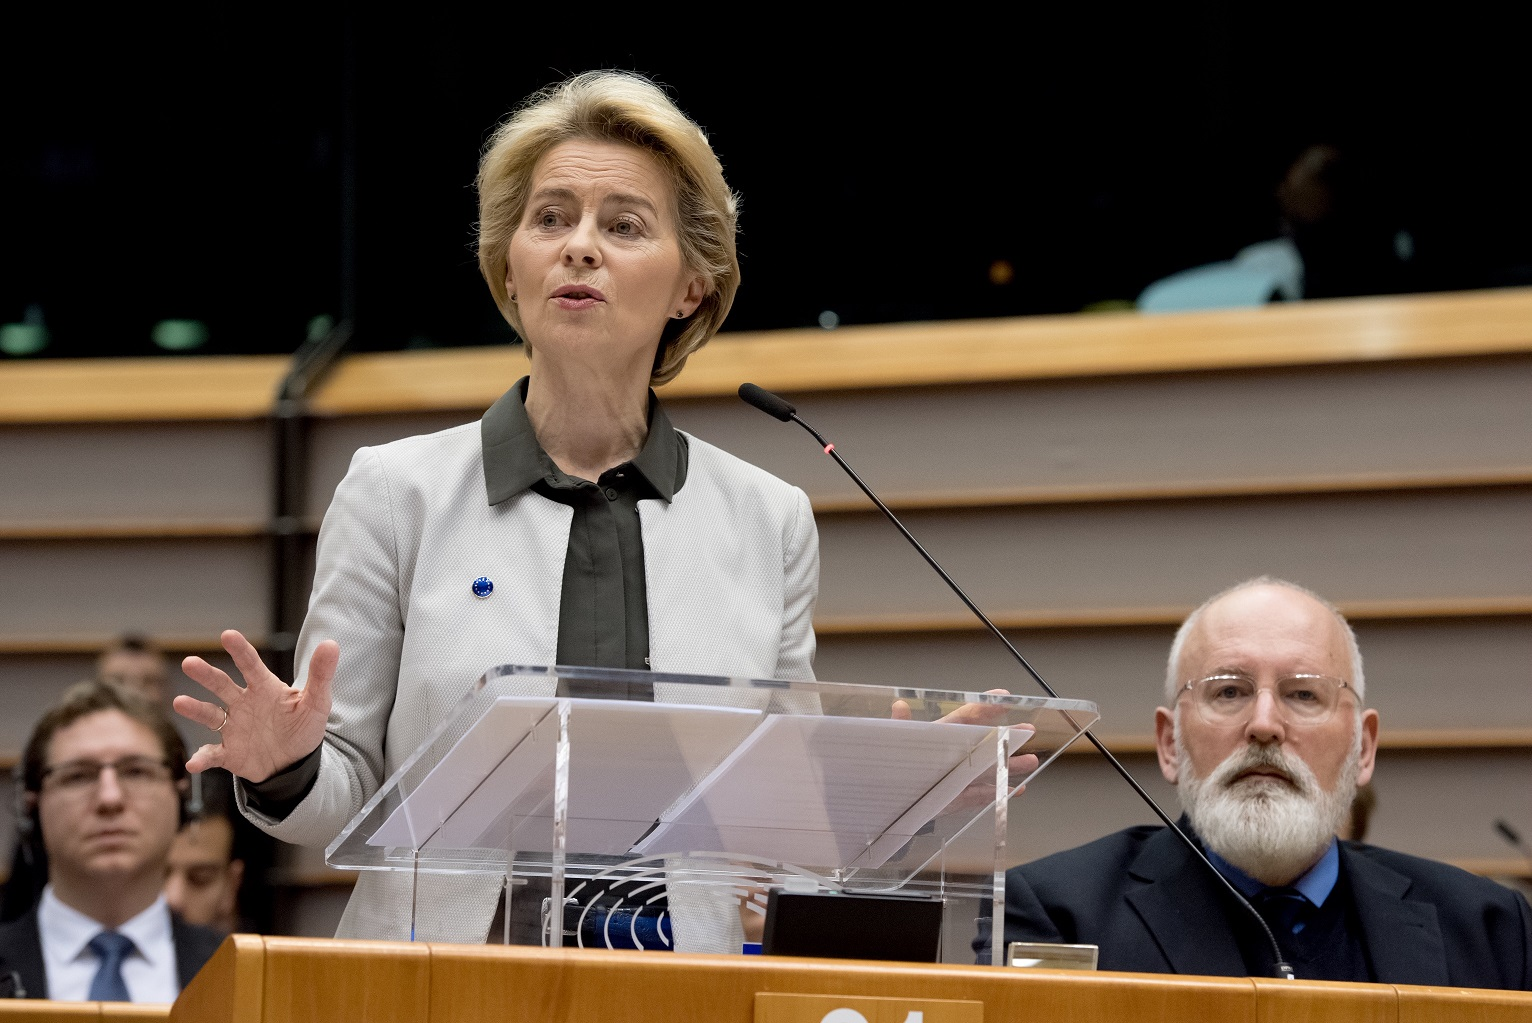 Ursula von der Leyen was chosen to head up the European Commission in July and presented the new green plan this week. Image credit: European Commission